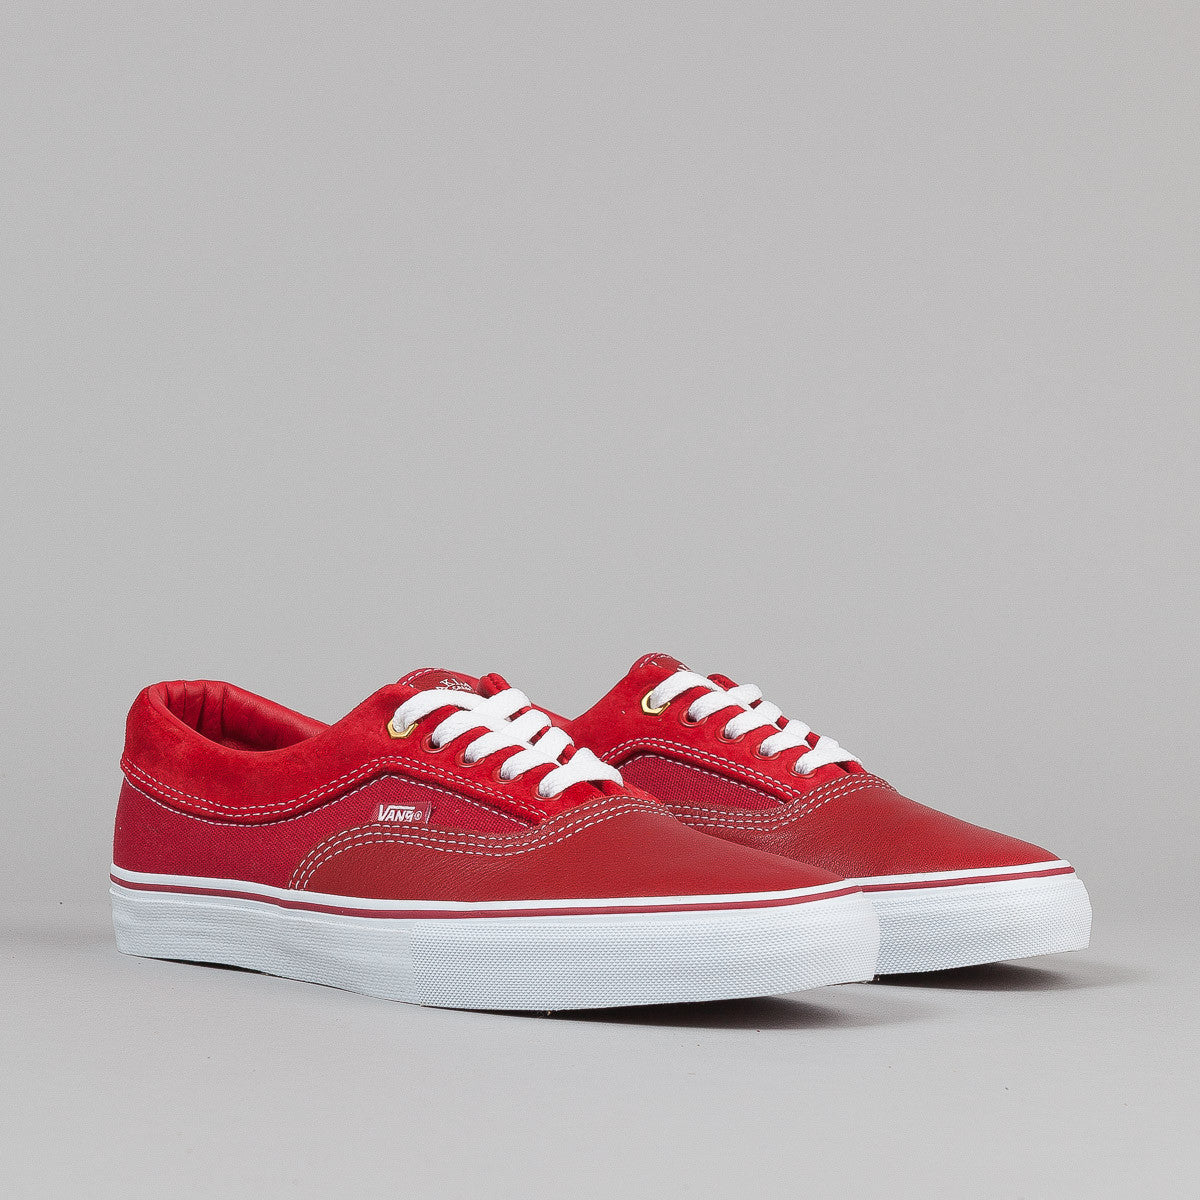 Vans Era 79 'S' Shoes - Max Schaaf / 4Q / R